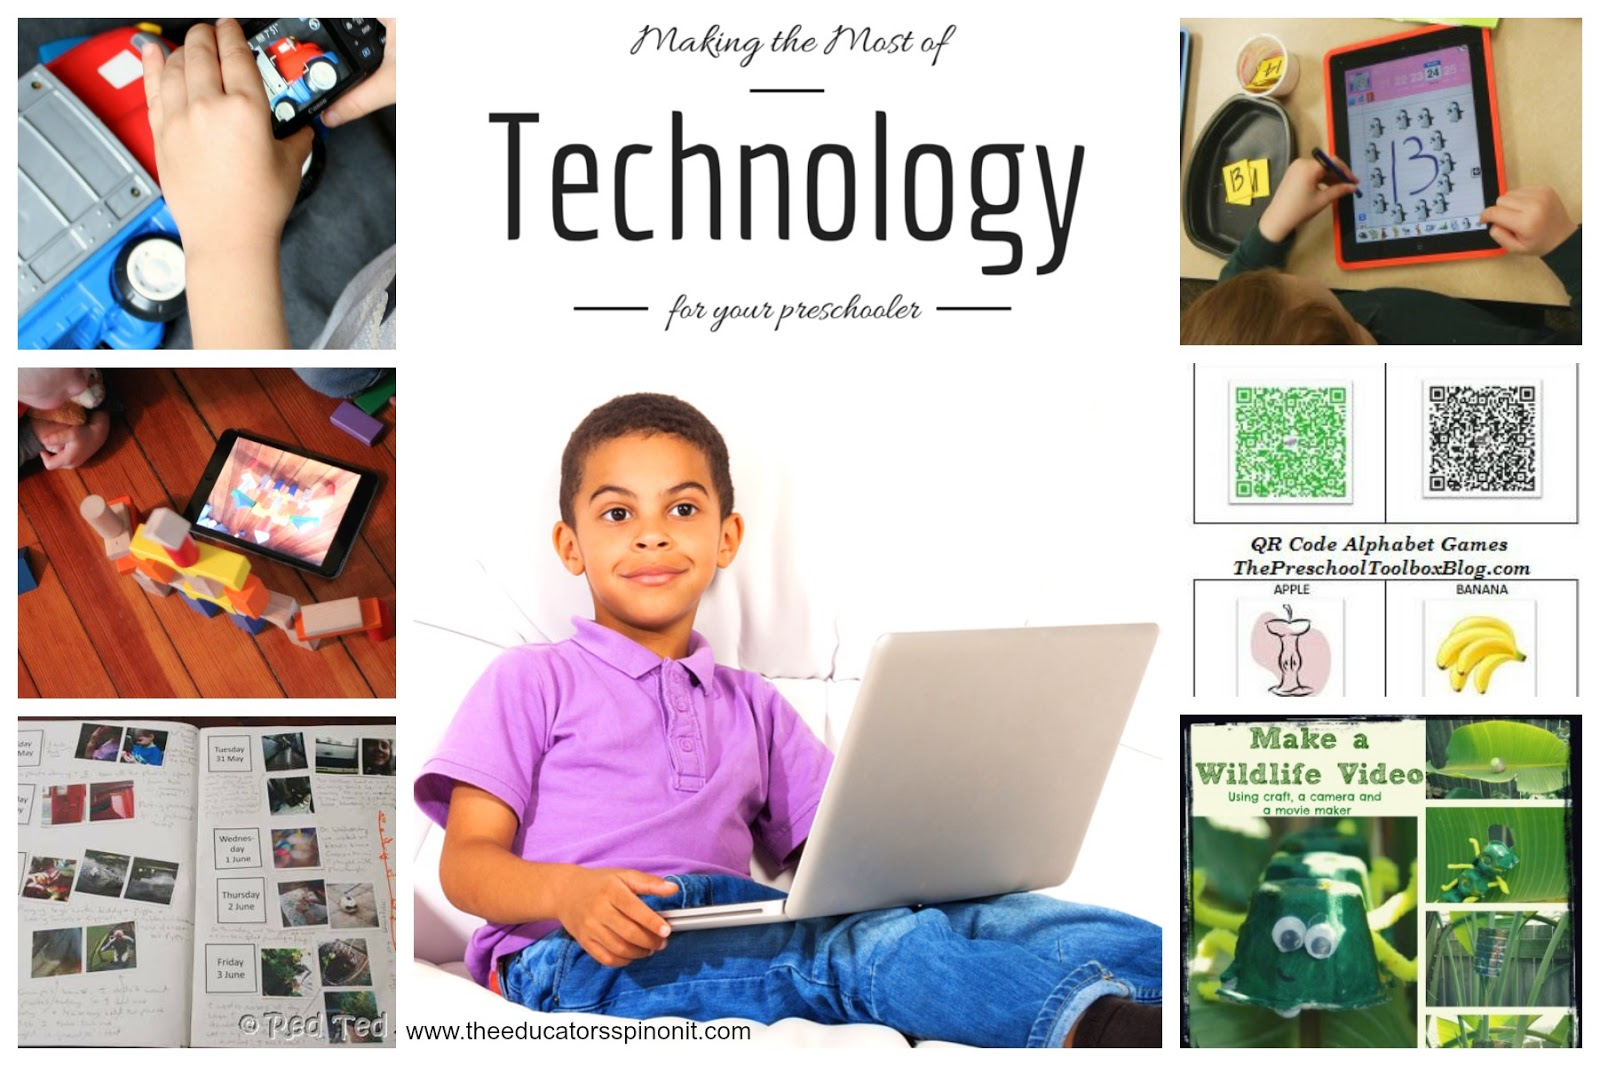 Preschool technology: Enrich learning with the latest tools